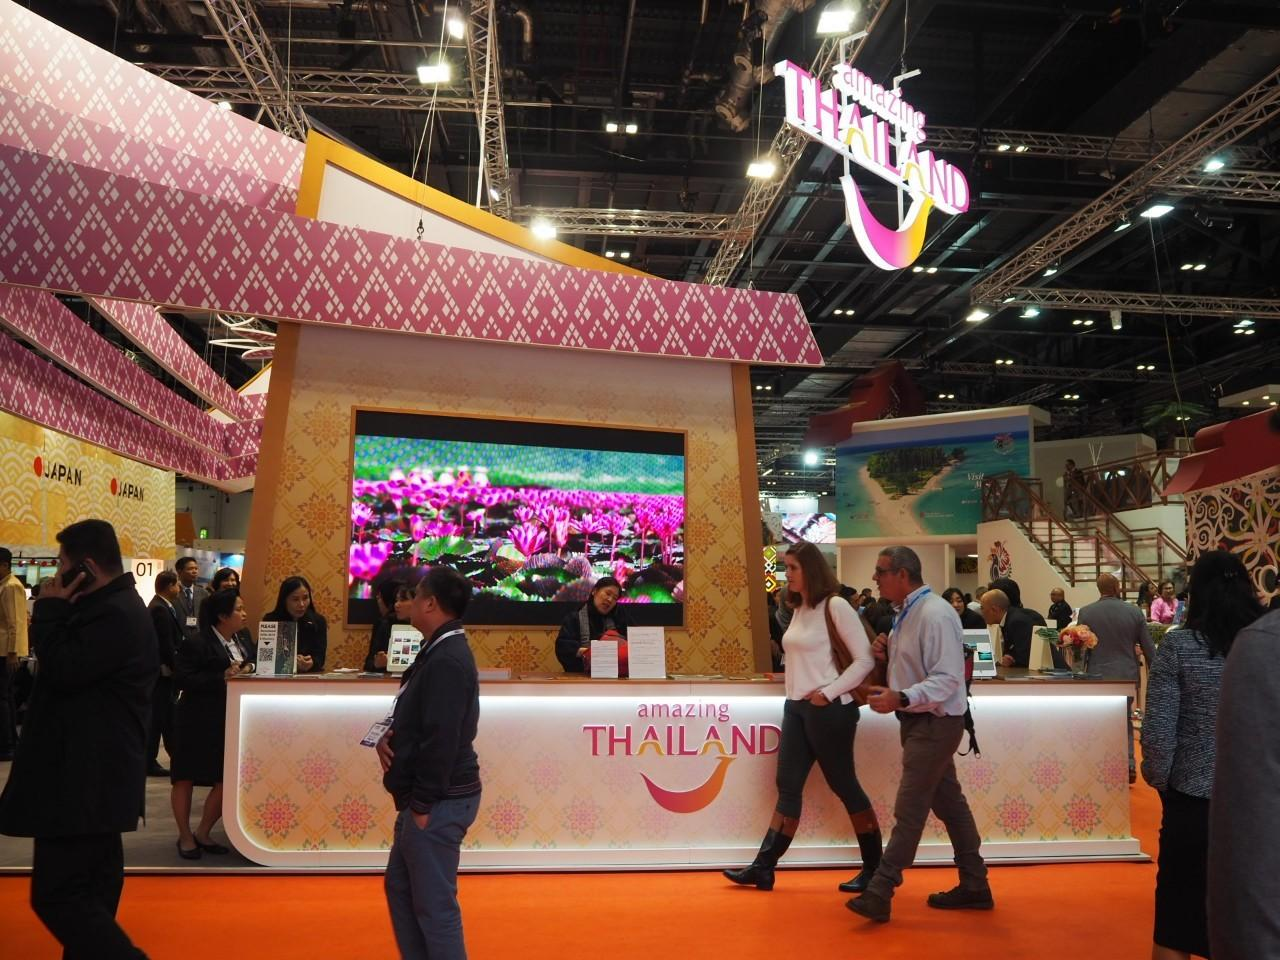 The 'Amazing Thailand' pavilion at World Travel Market 2019 in London.